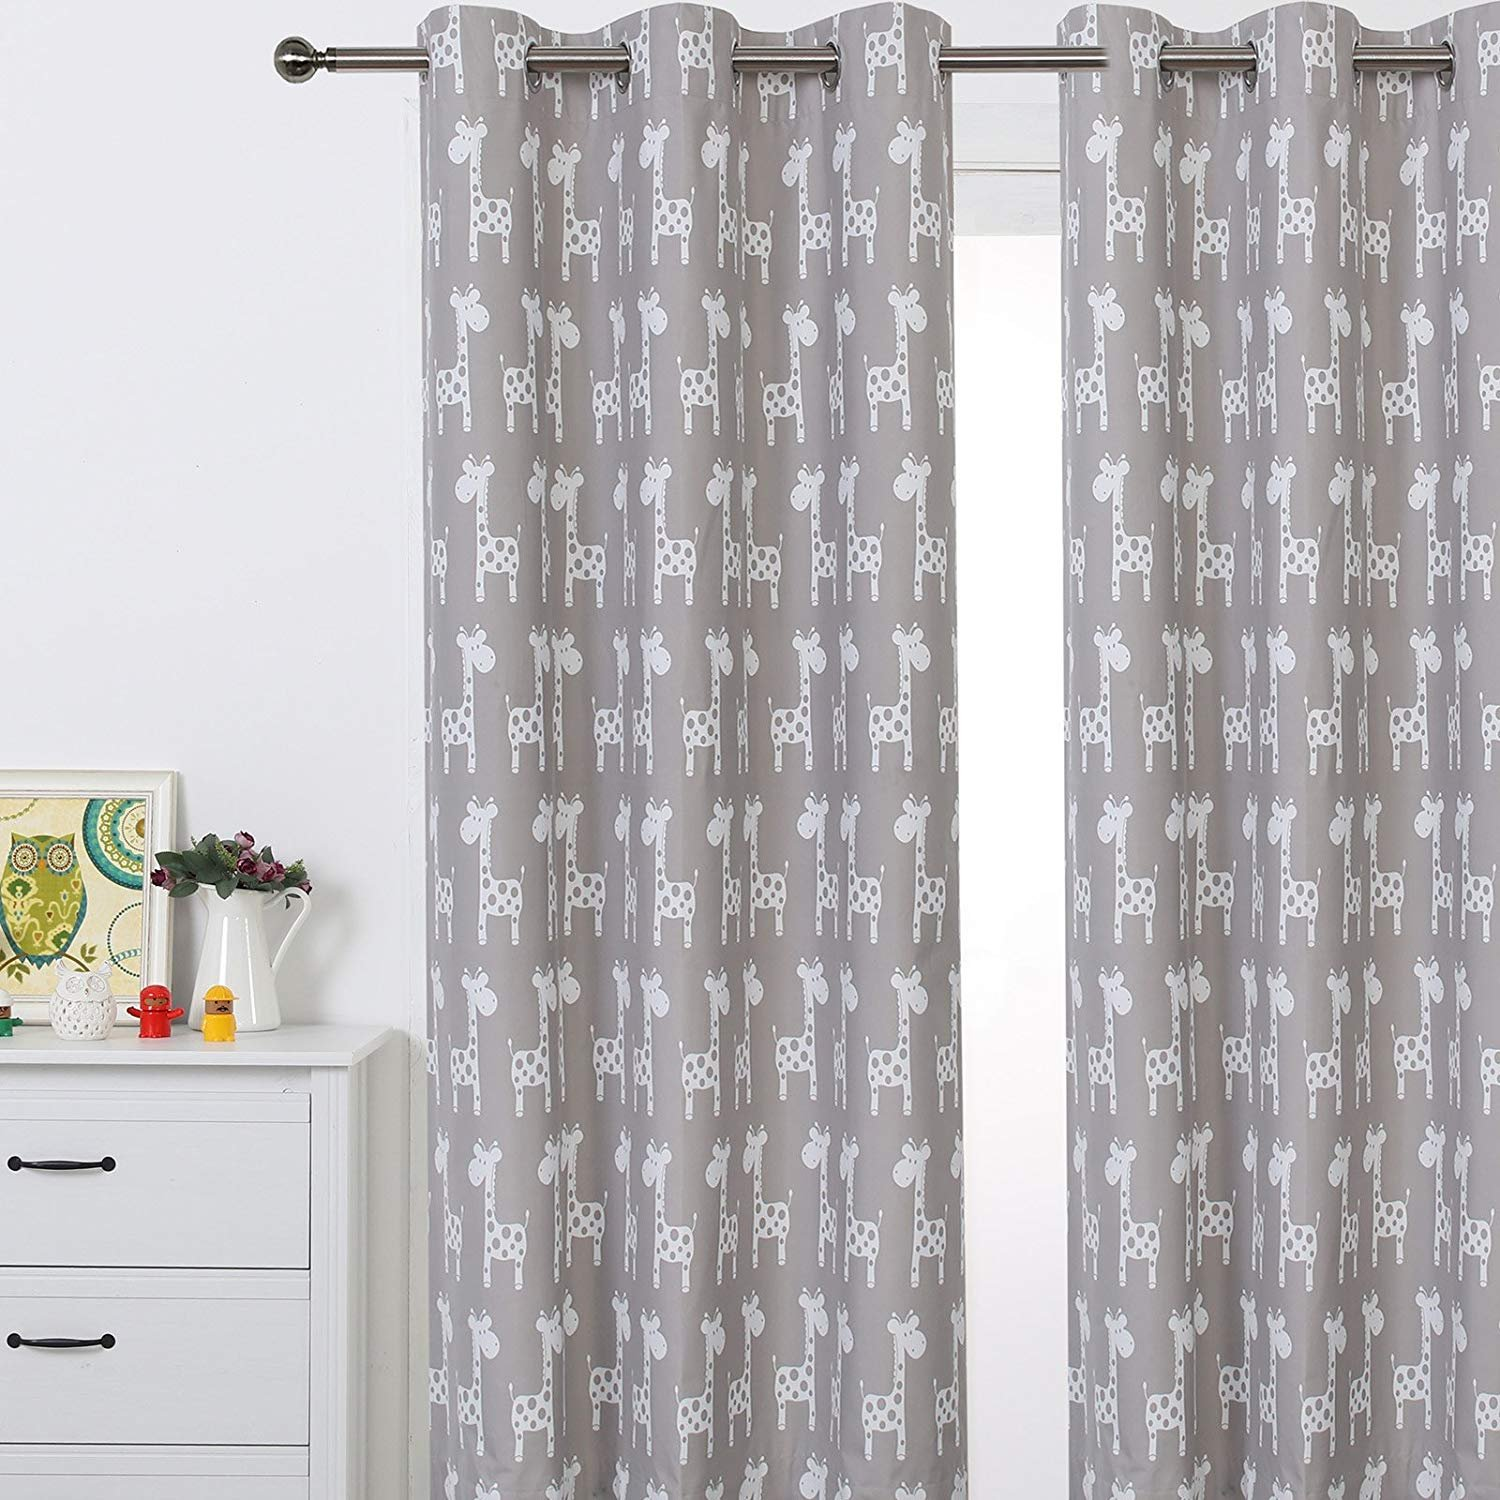 Sherwood GIRAFFE Eyelet Curtain Blockout Coated Window Panel Drapes for Kids Girl Boy Bedroom, One Panel, 47 x 84 Inch (Taupe)